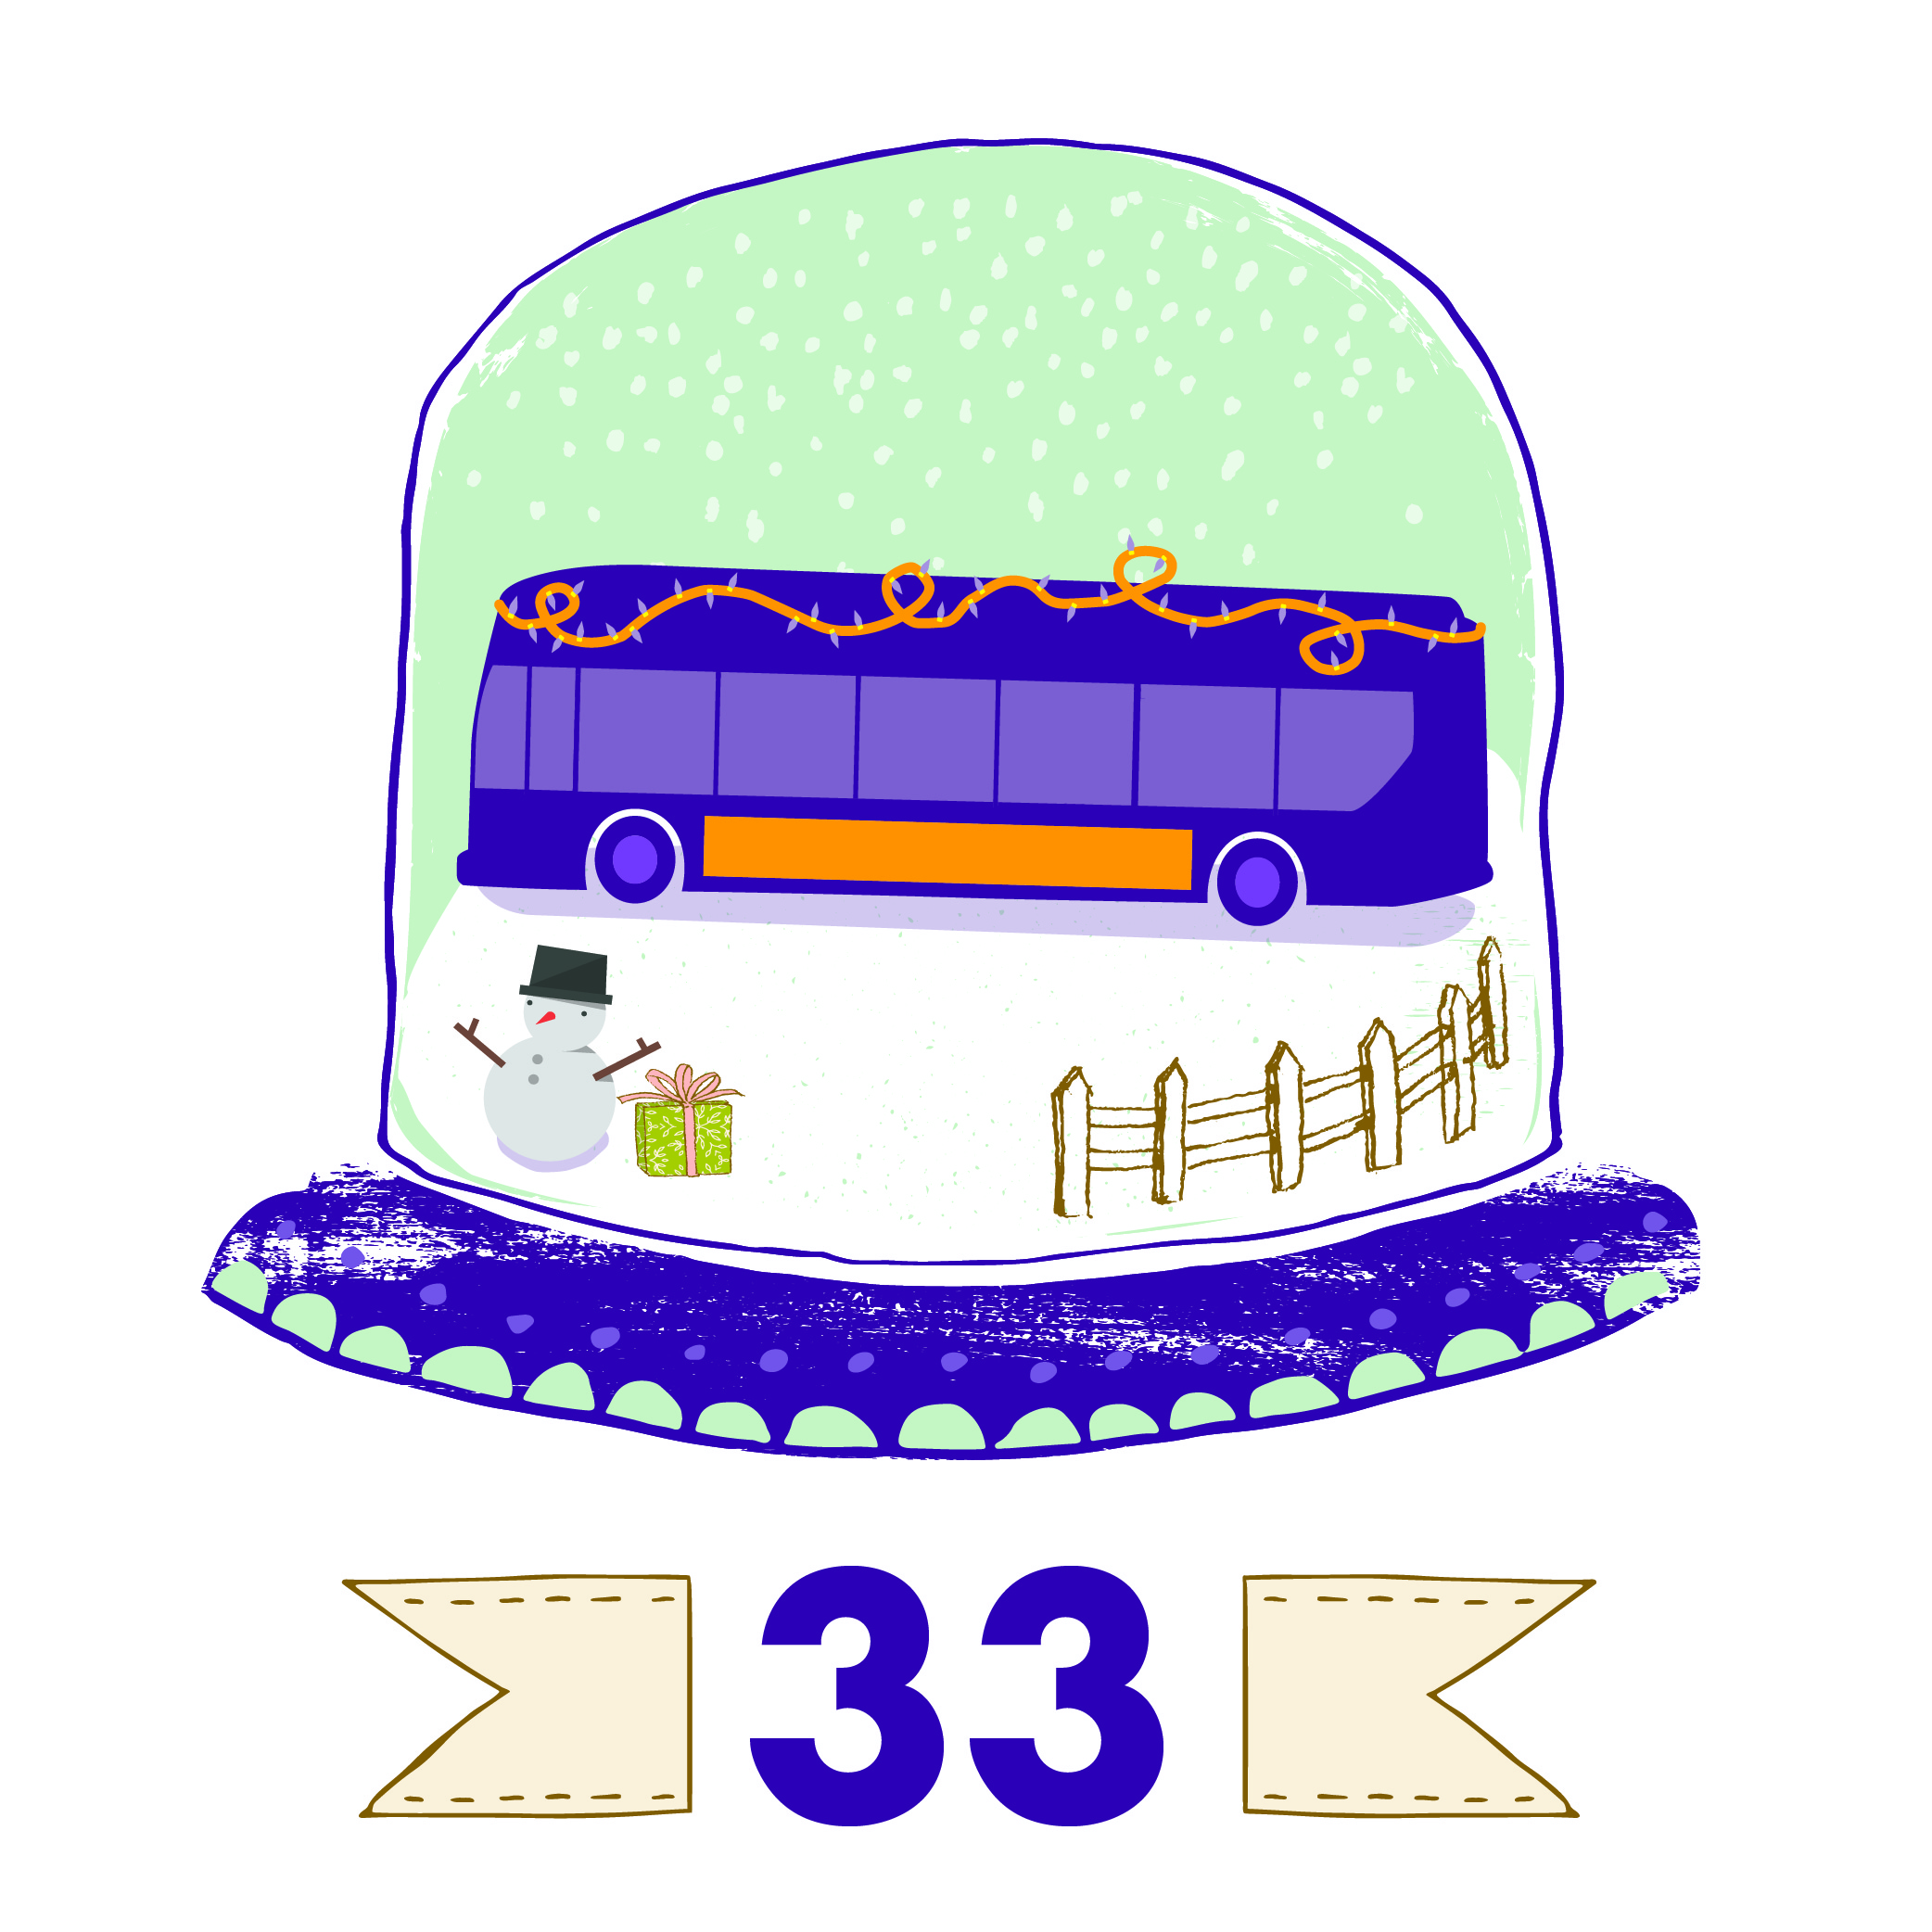 infographic symbolizing 33 routes